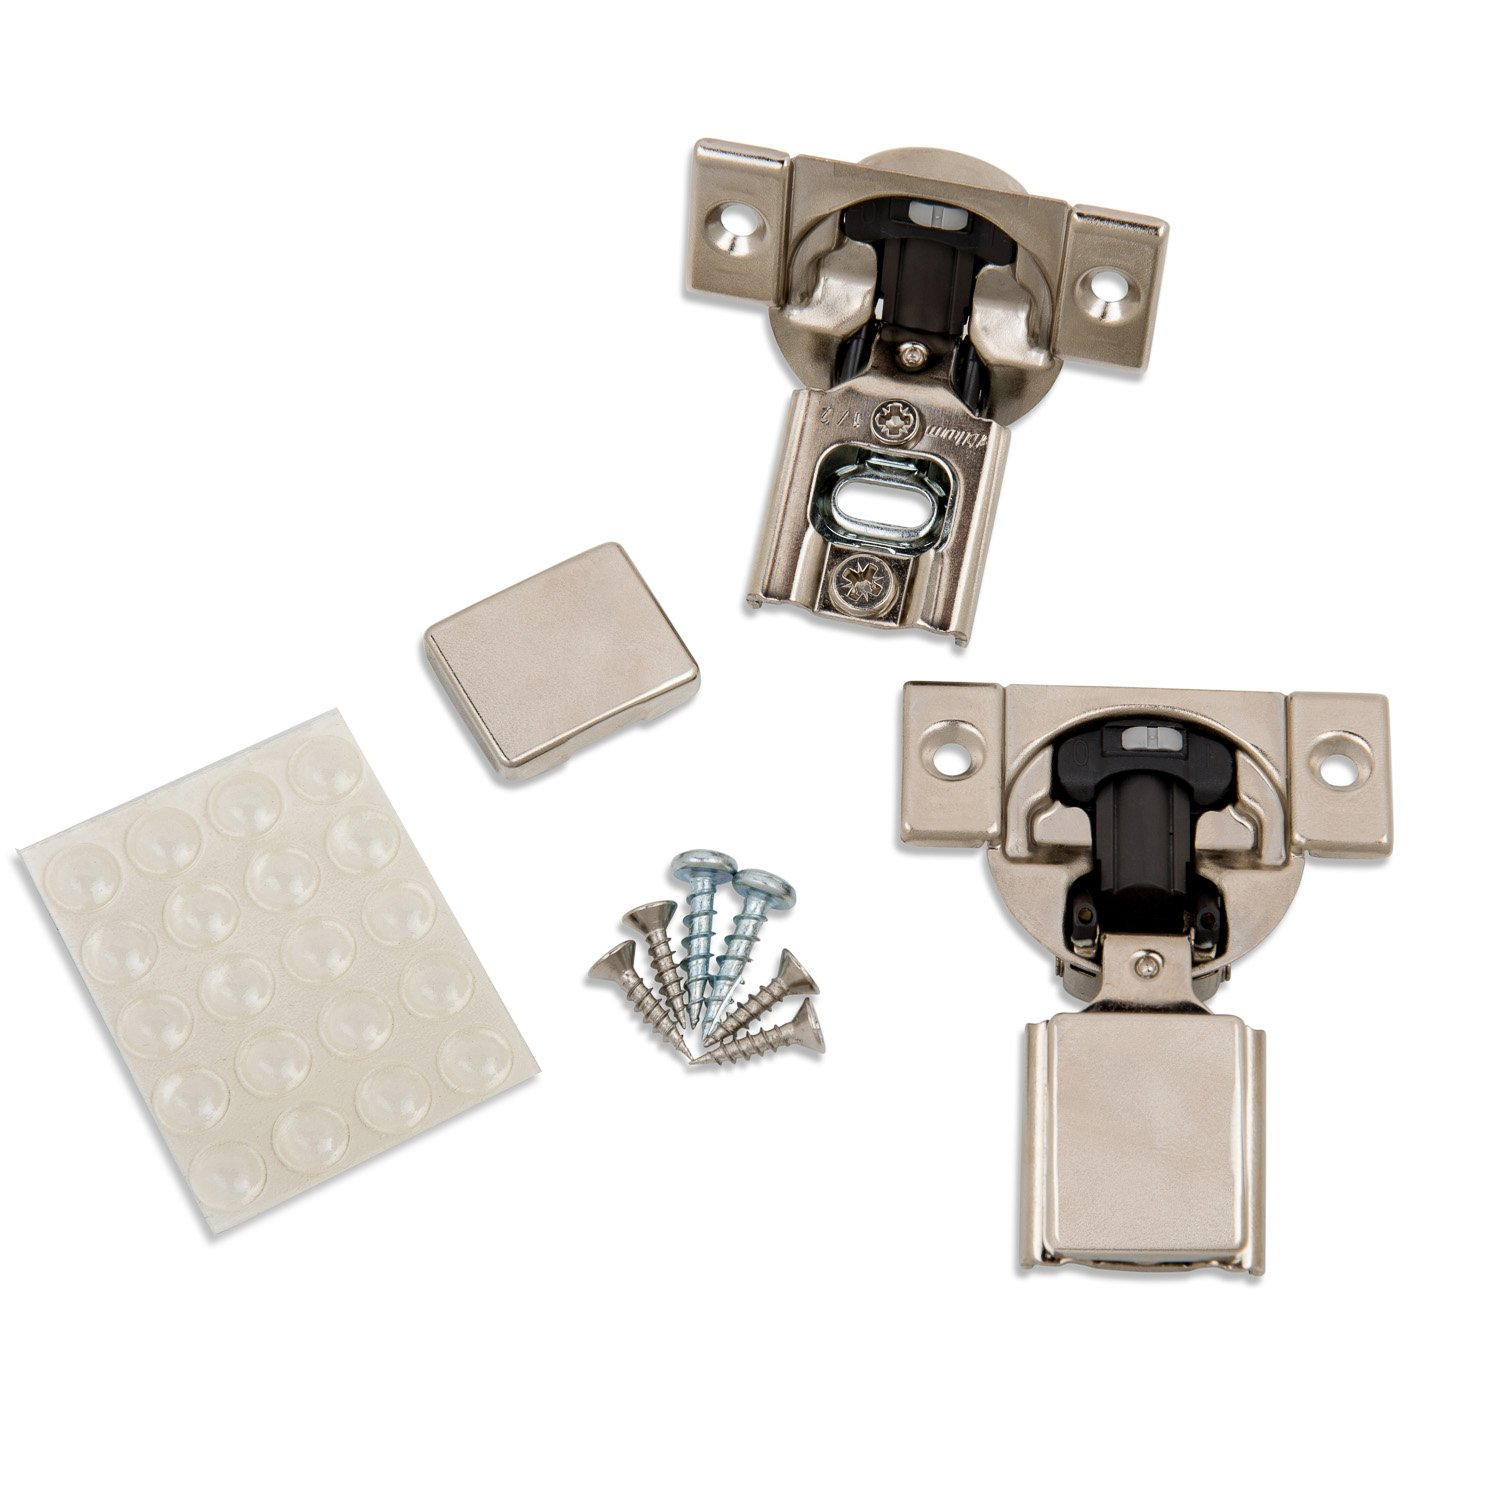 Blum (20 Pack) 1/2'' Overlay Soft Close Hinge 38N355B.08 105° Blumotion with Screws, Cover Caps, ProCabinetBumpers Bumpers